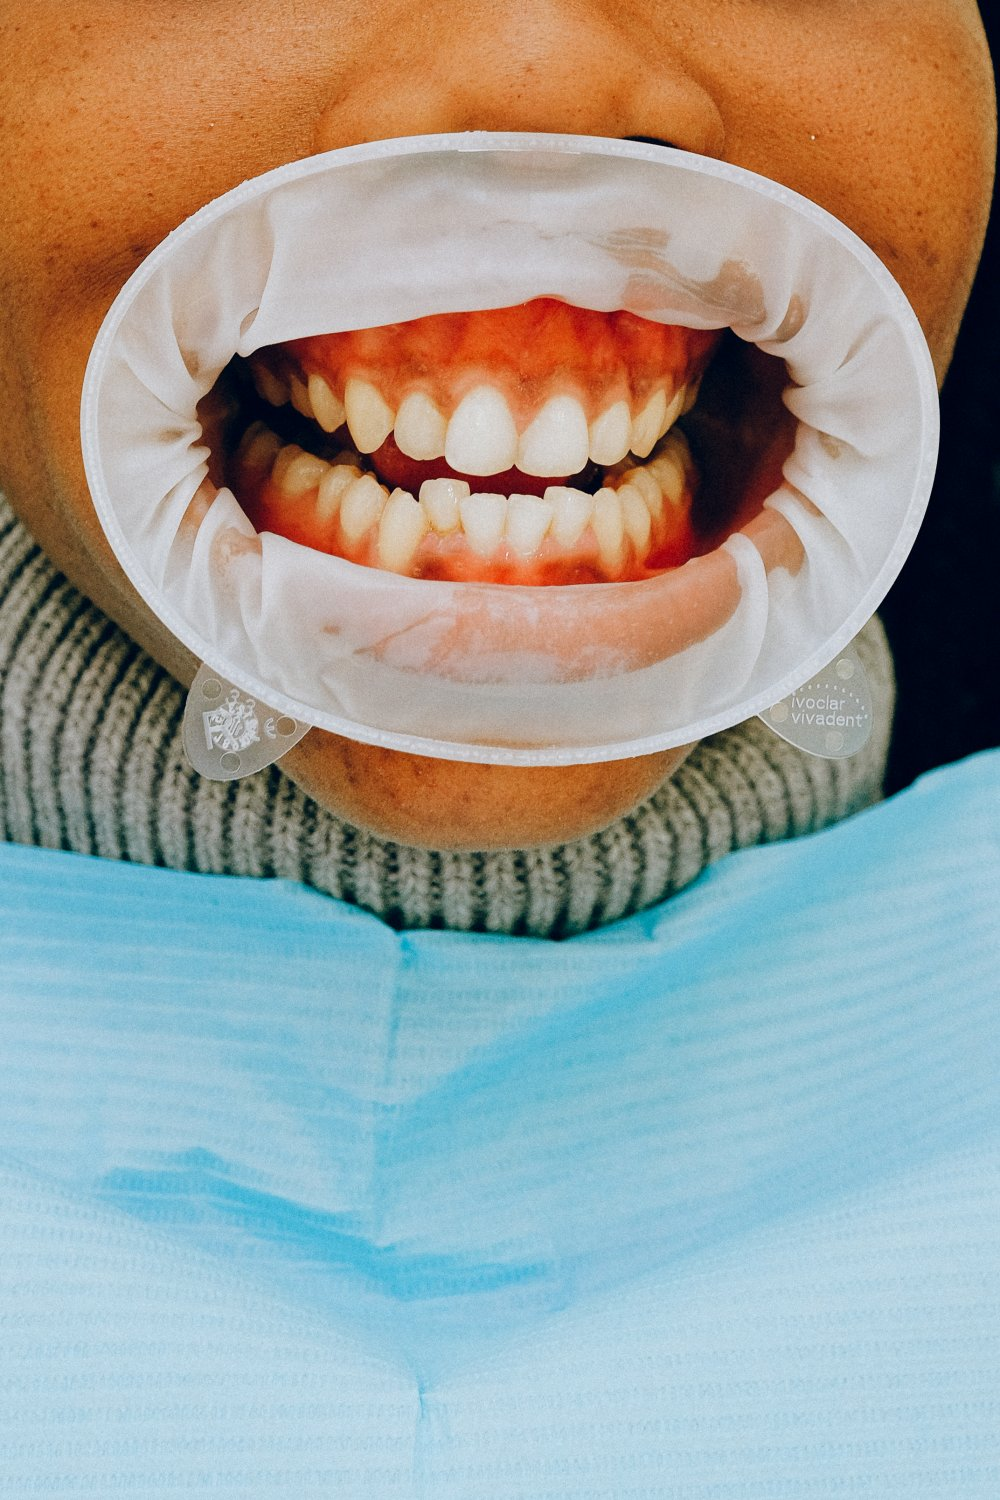 Preparing for Invisalign Treatment? Read This First